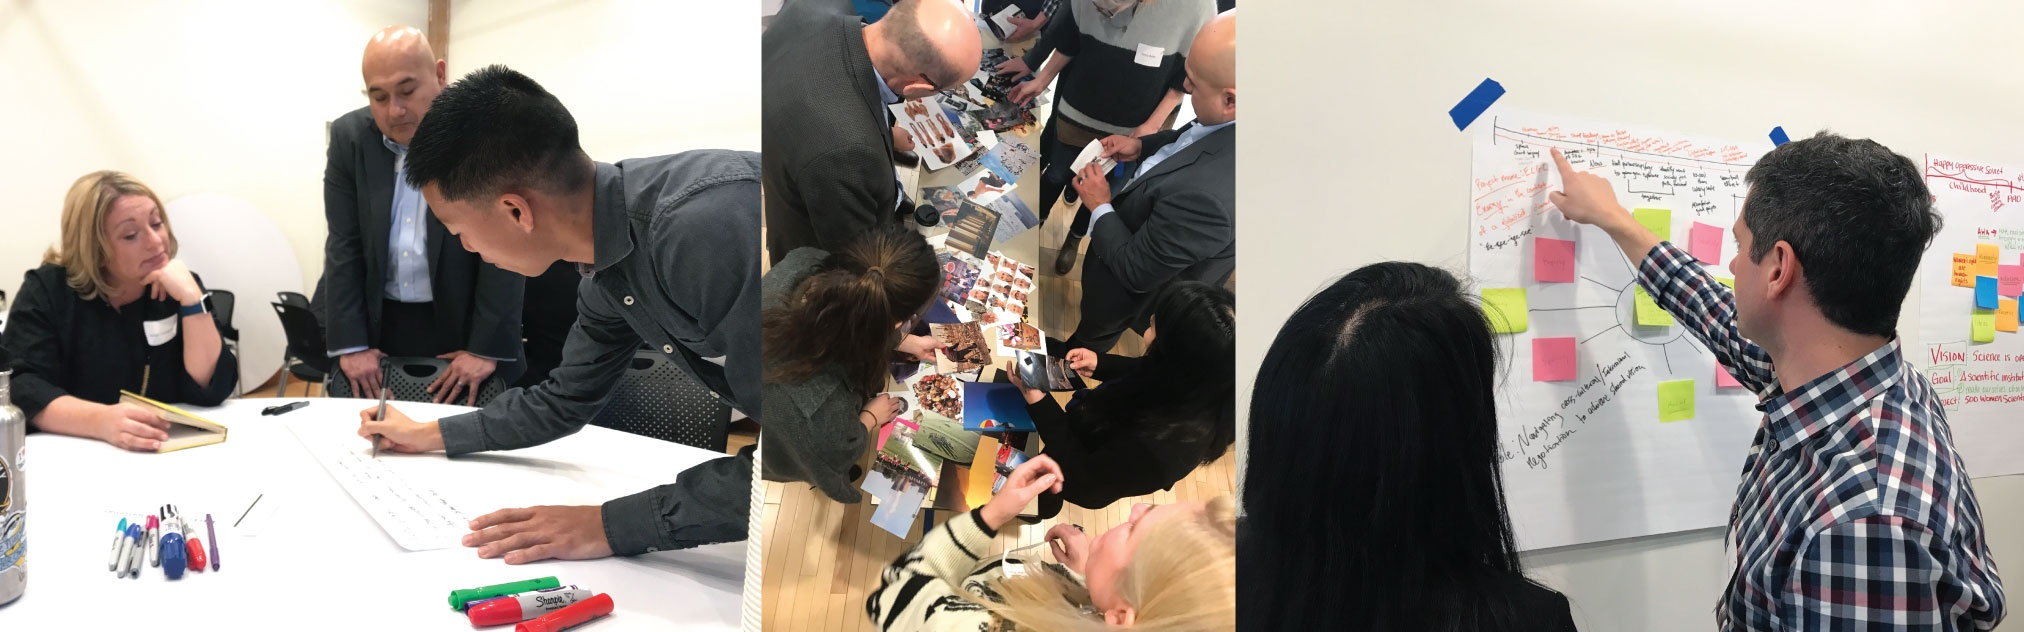 Collage of photos of people working together during the Grist-UO workshops